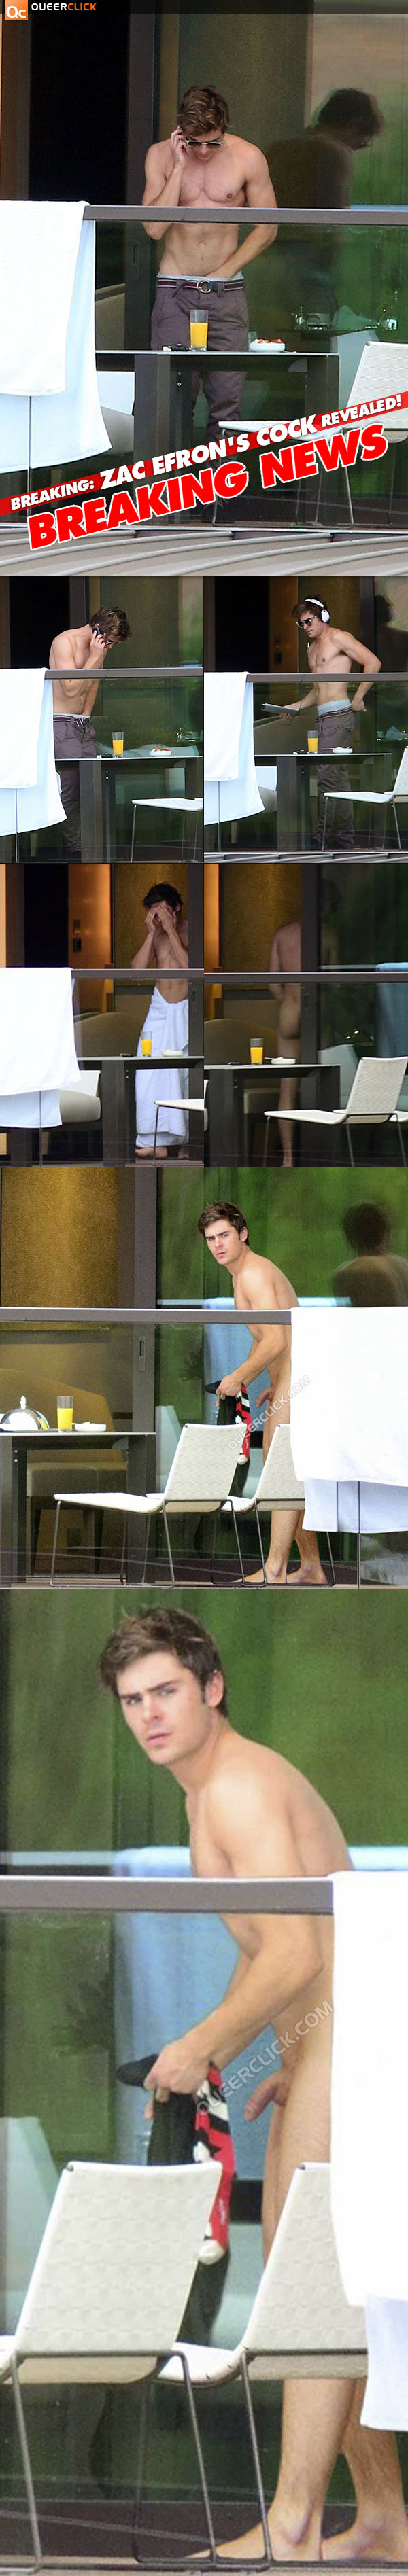 Free naked zac efron pics opinion, error